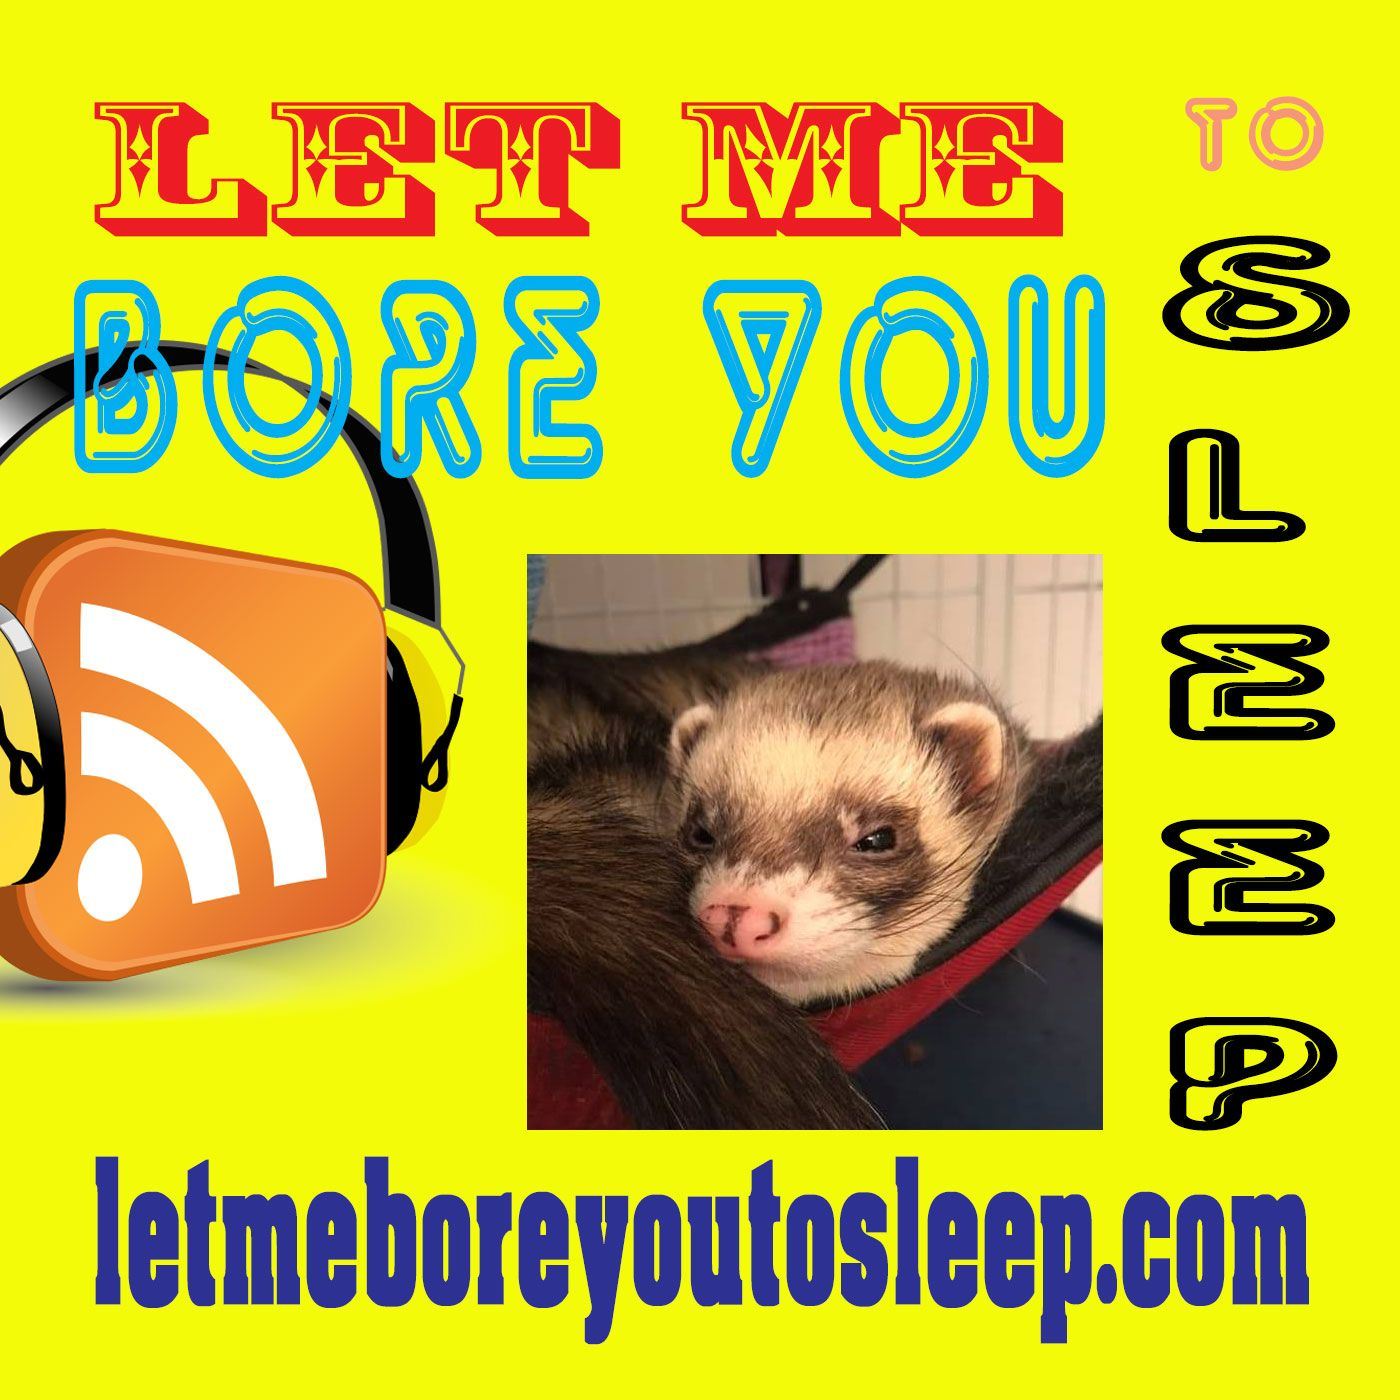 #155 Let me bore you to sleep - Jason Newland (23rd May 2019)